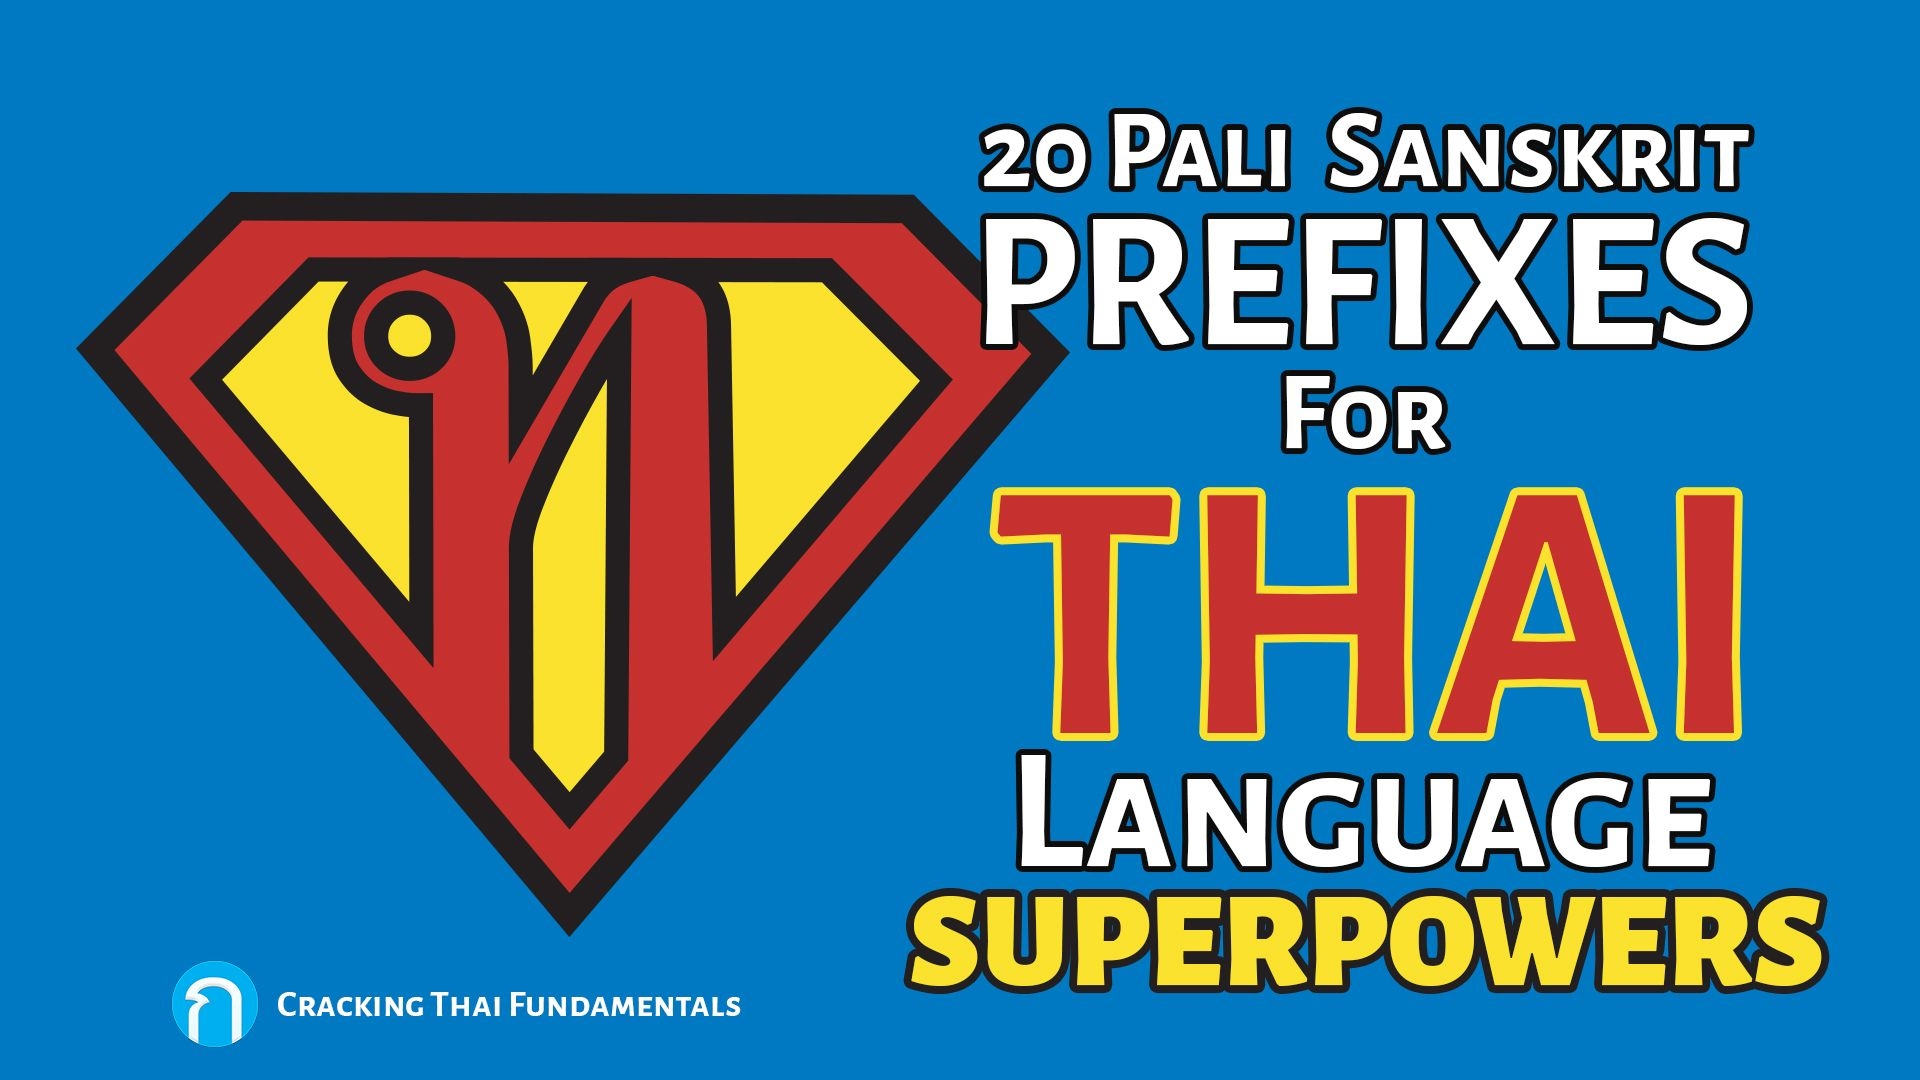 20 Sanskrit and Pali Prefixes in Thai to give you Thai Language Superpowers - คำอุปสรรค 'kʰam upasak'